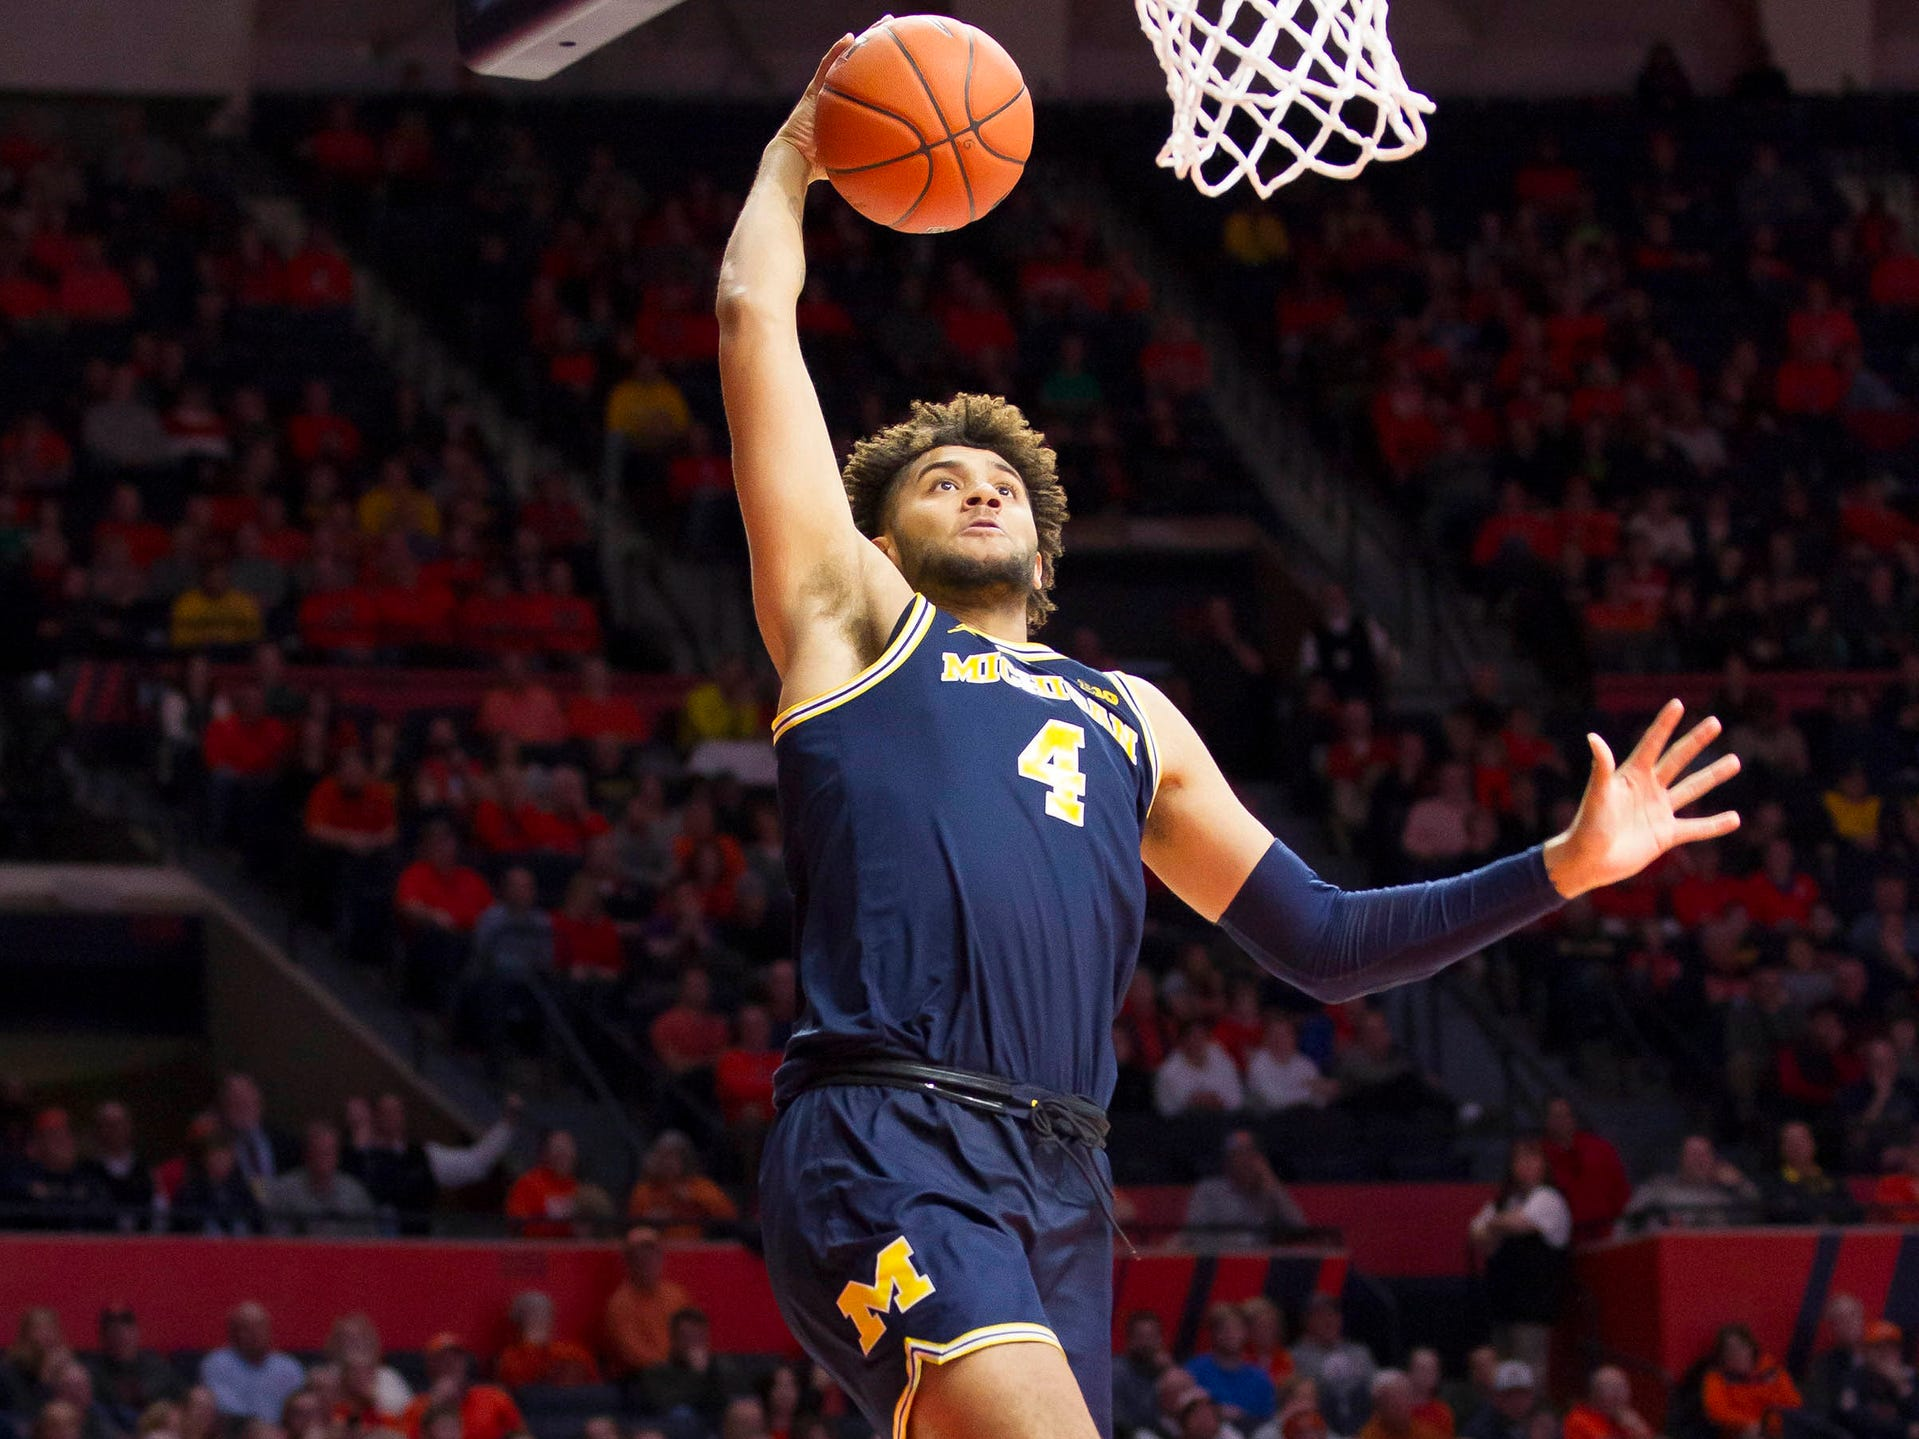 Michigan forward Isaiah Livers shoots during the second half of U-M's 79-69 win on Thursday, Jan. 10, 2019, in Champaign, Ill.